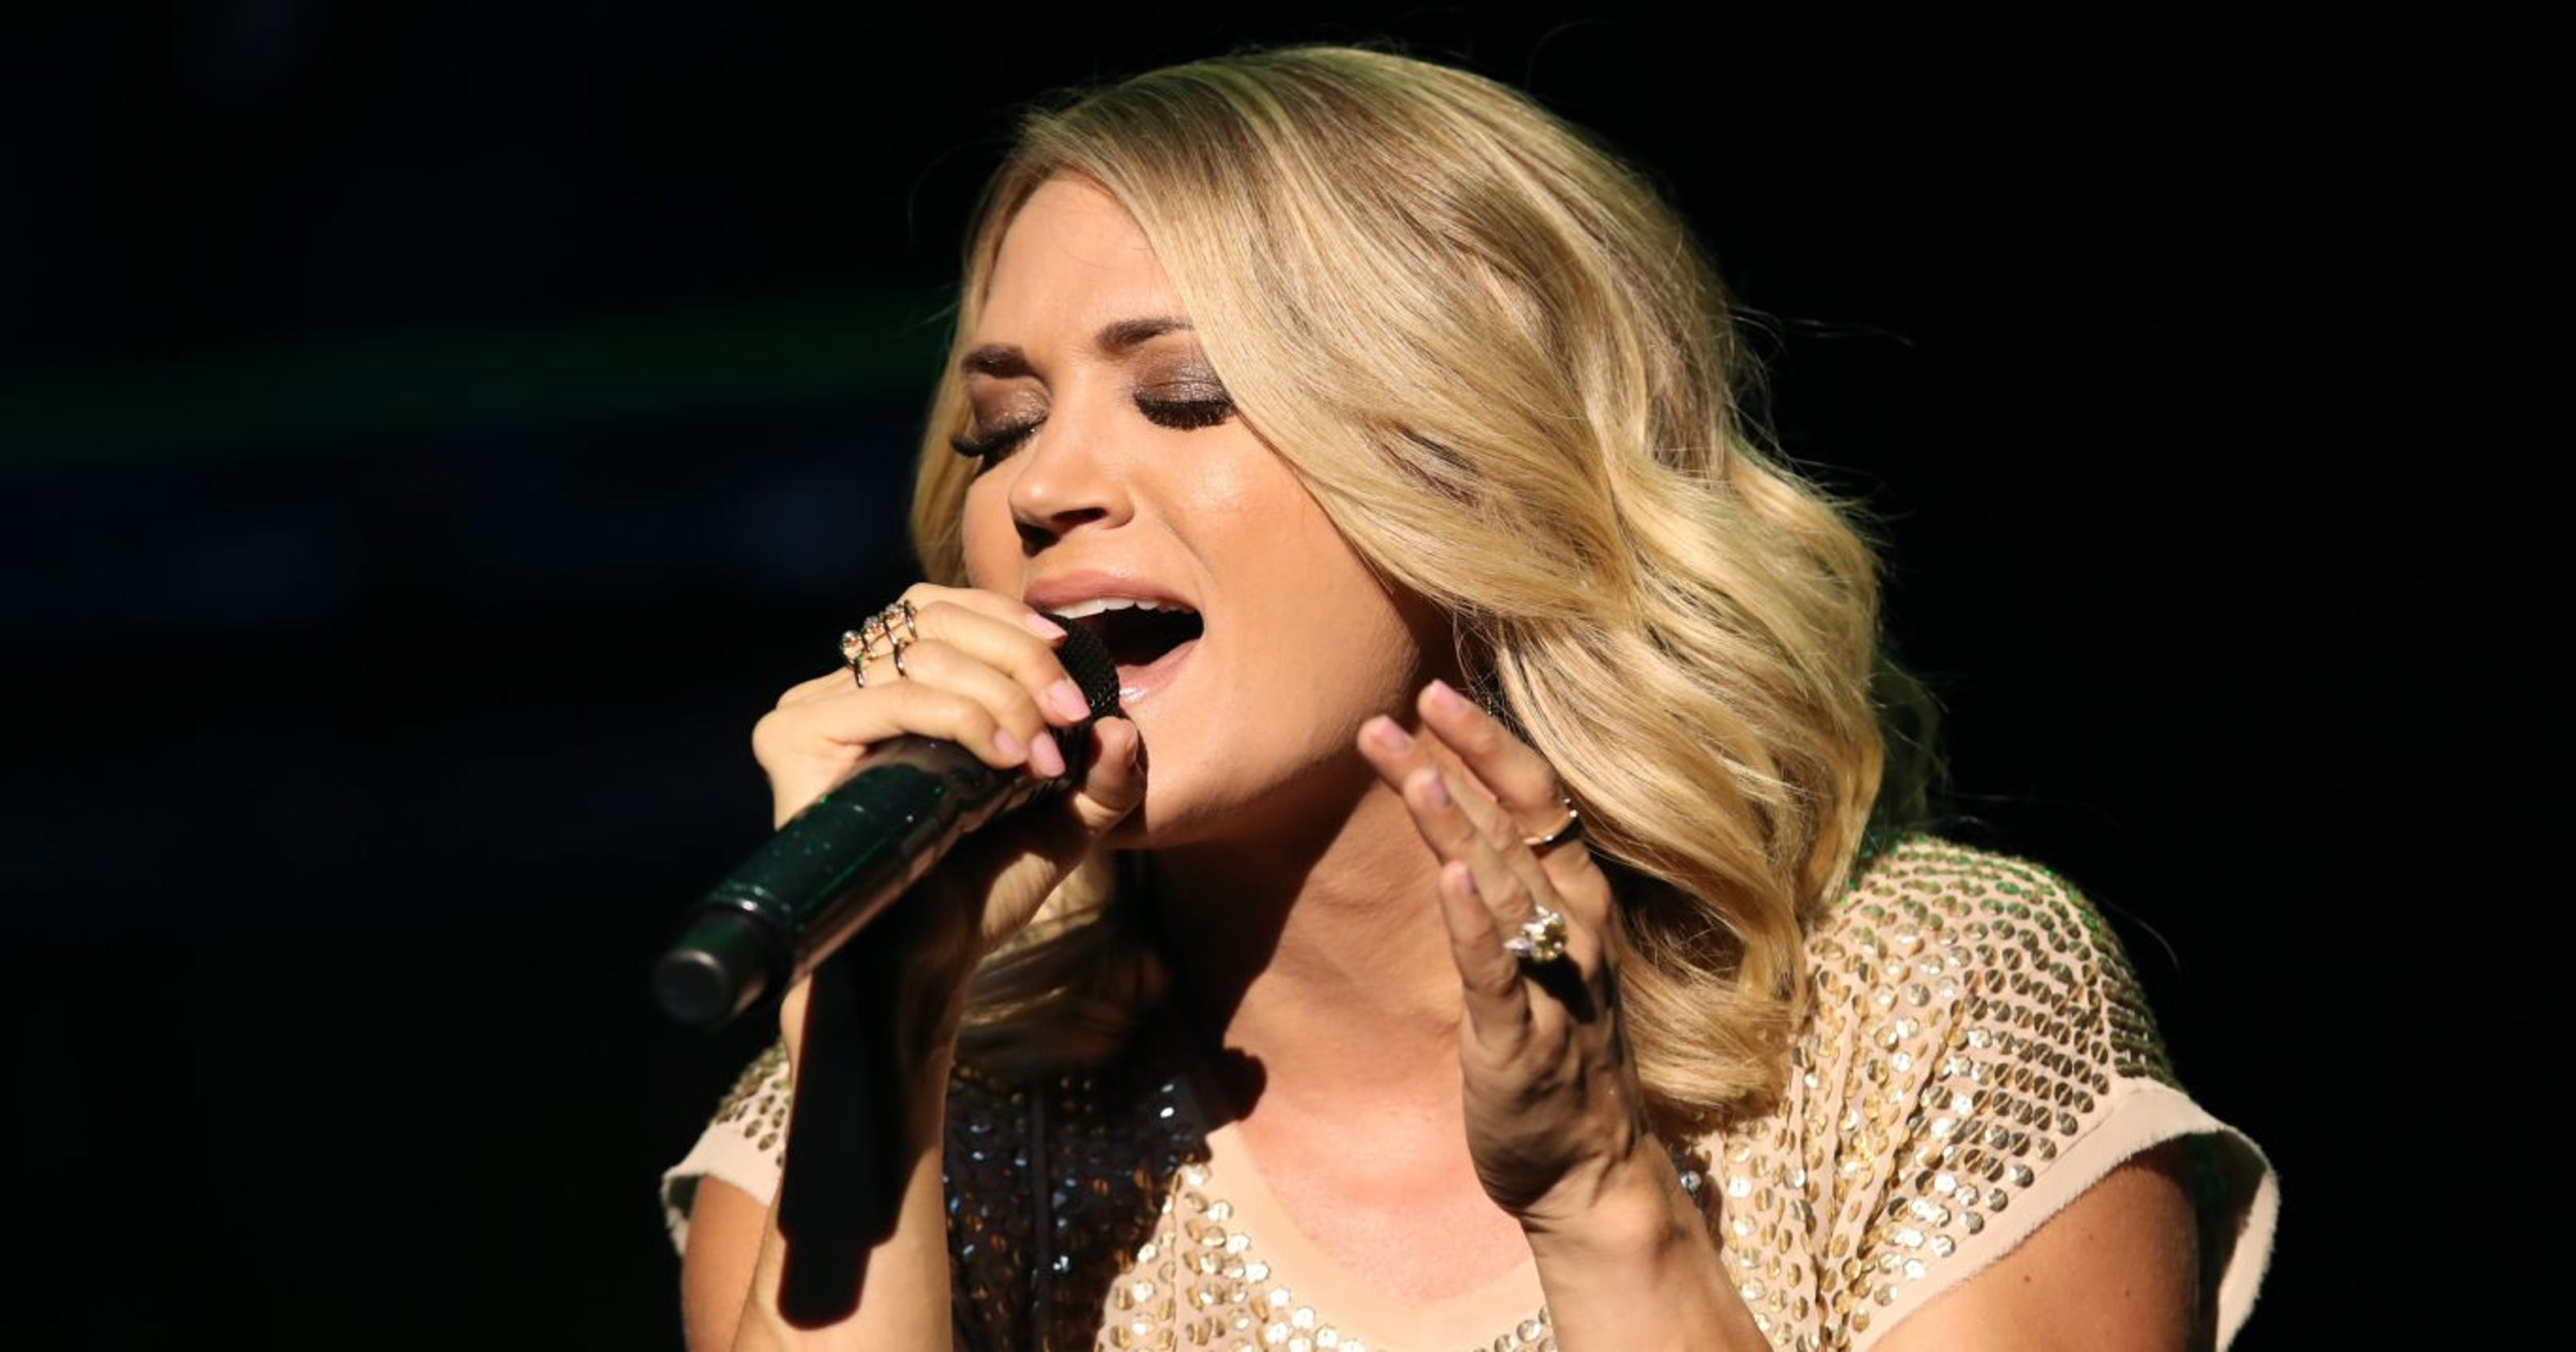 Carrie Underwood hilariously sings 'Happy Birthday' to her son after inhaling helium